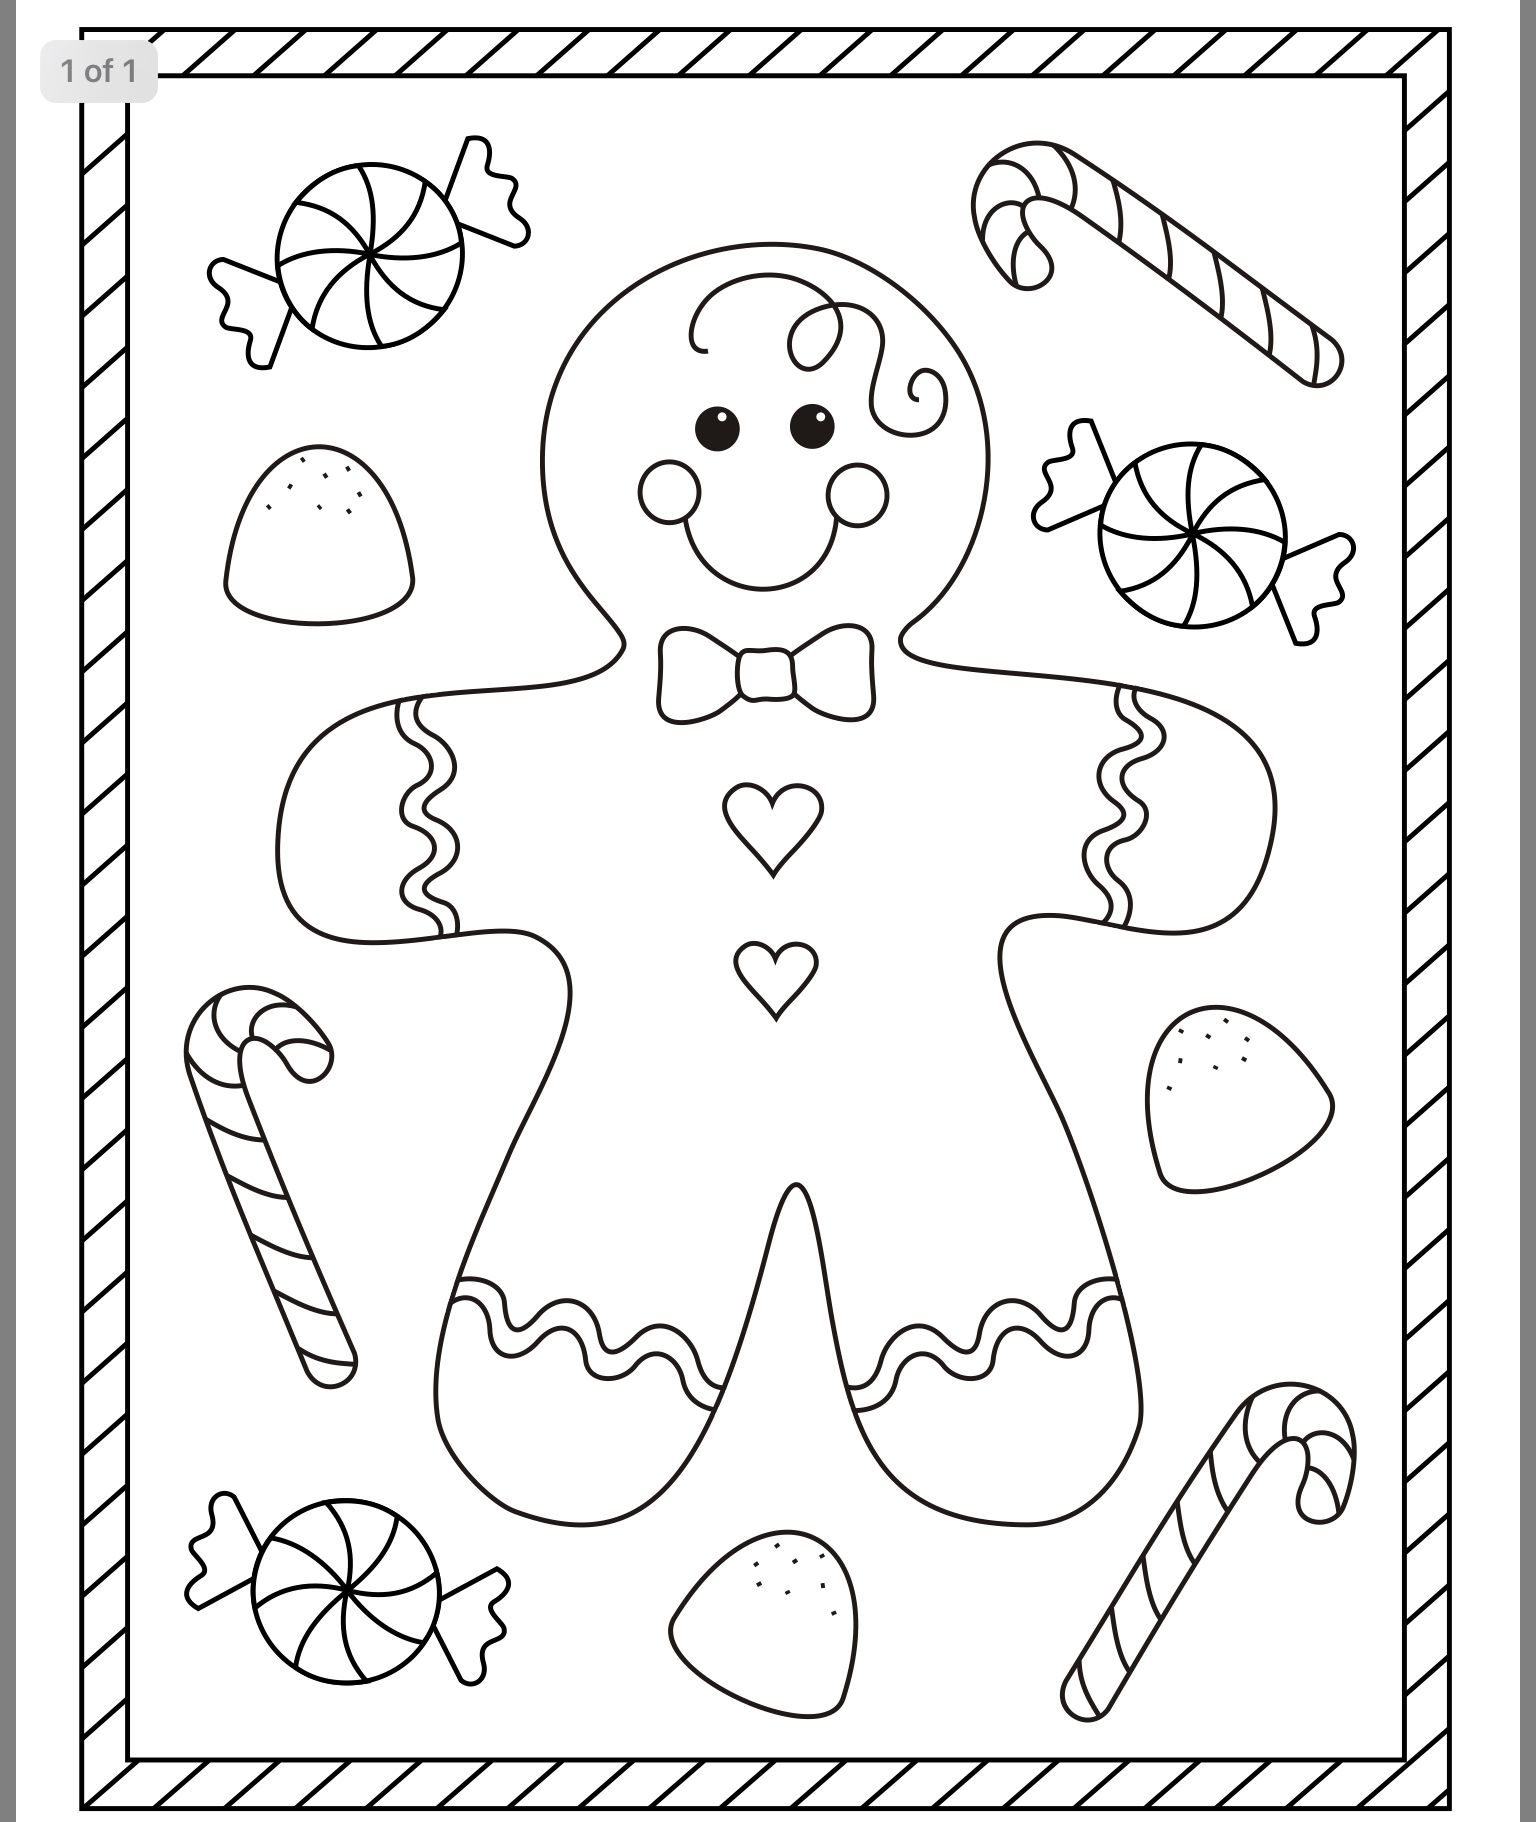 Free Christmas Coloring Pages Image By Laura Gentle On